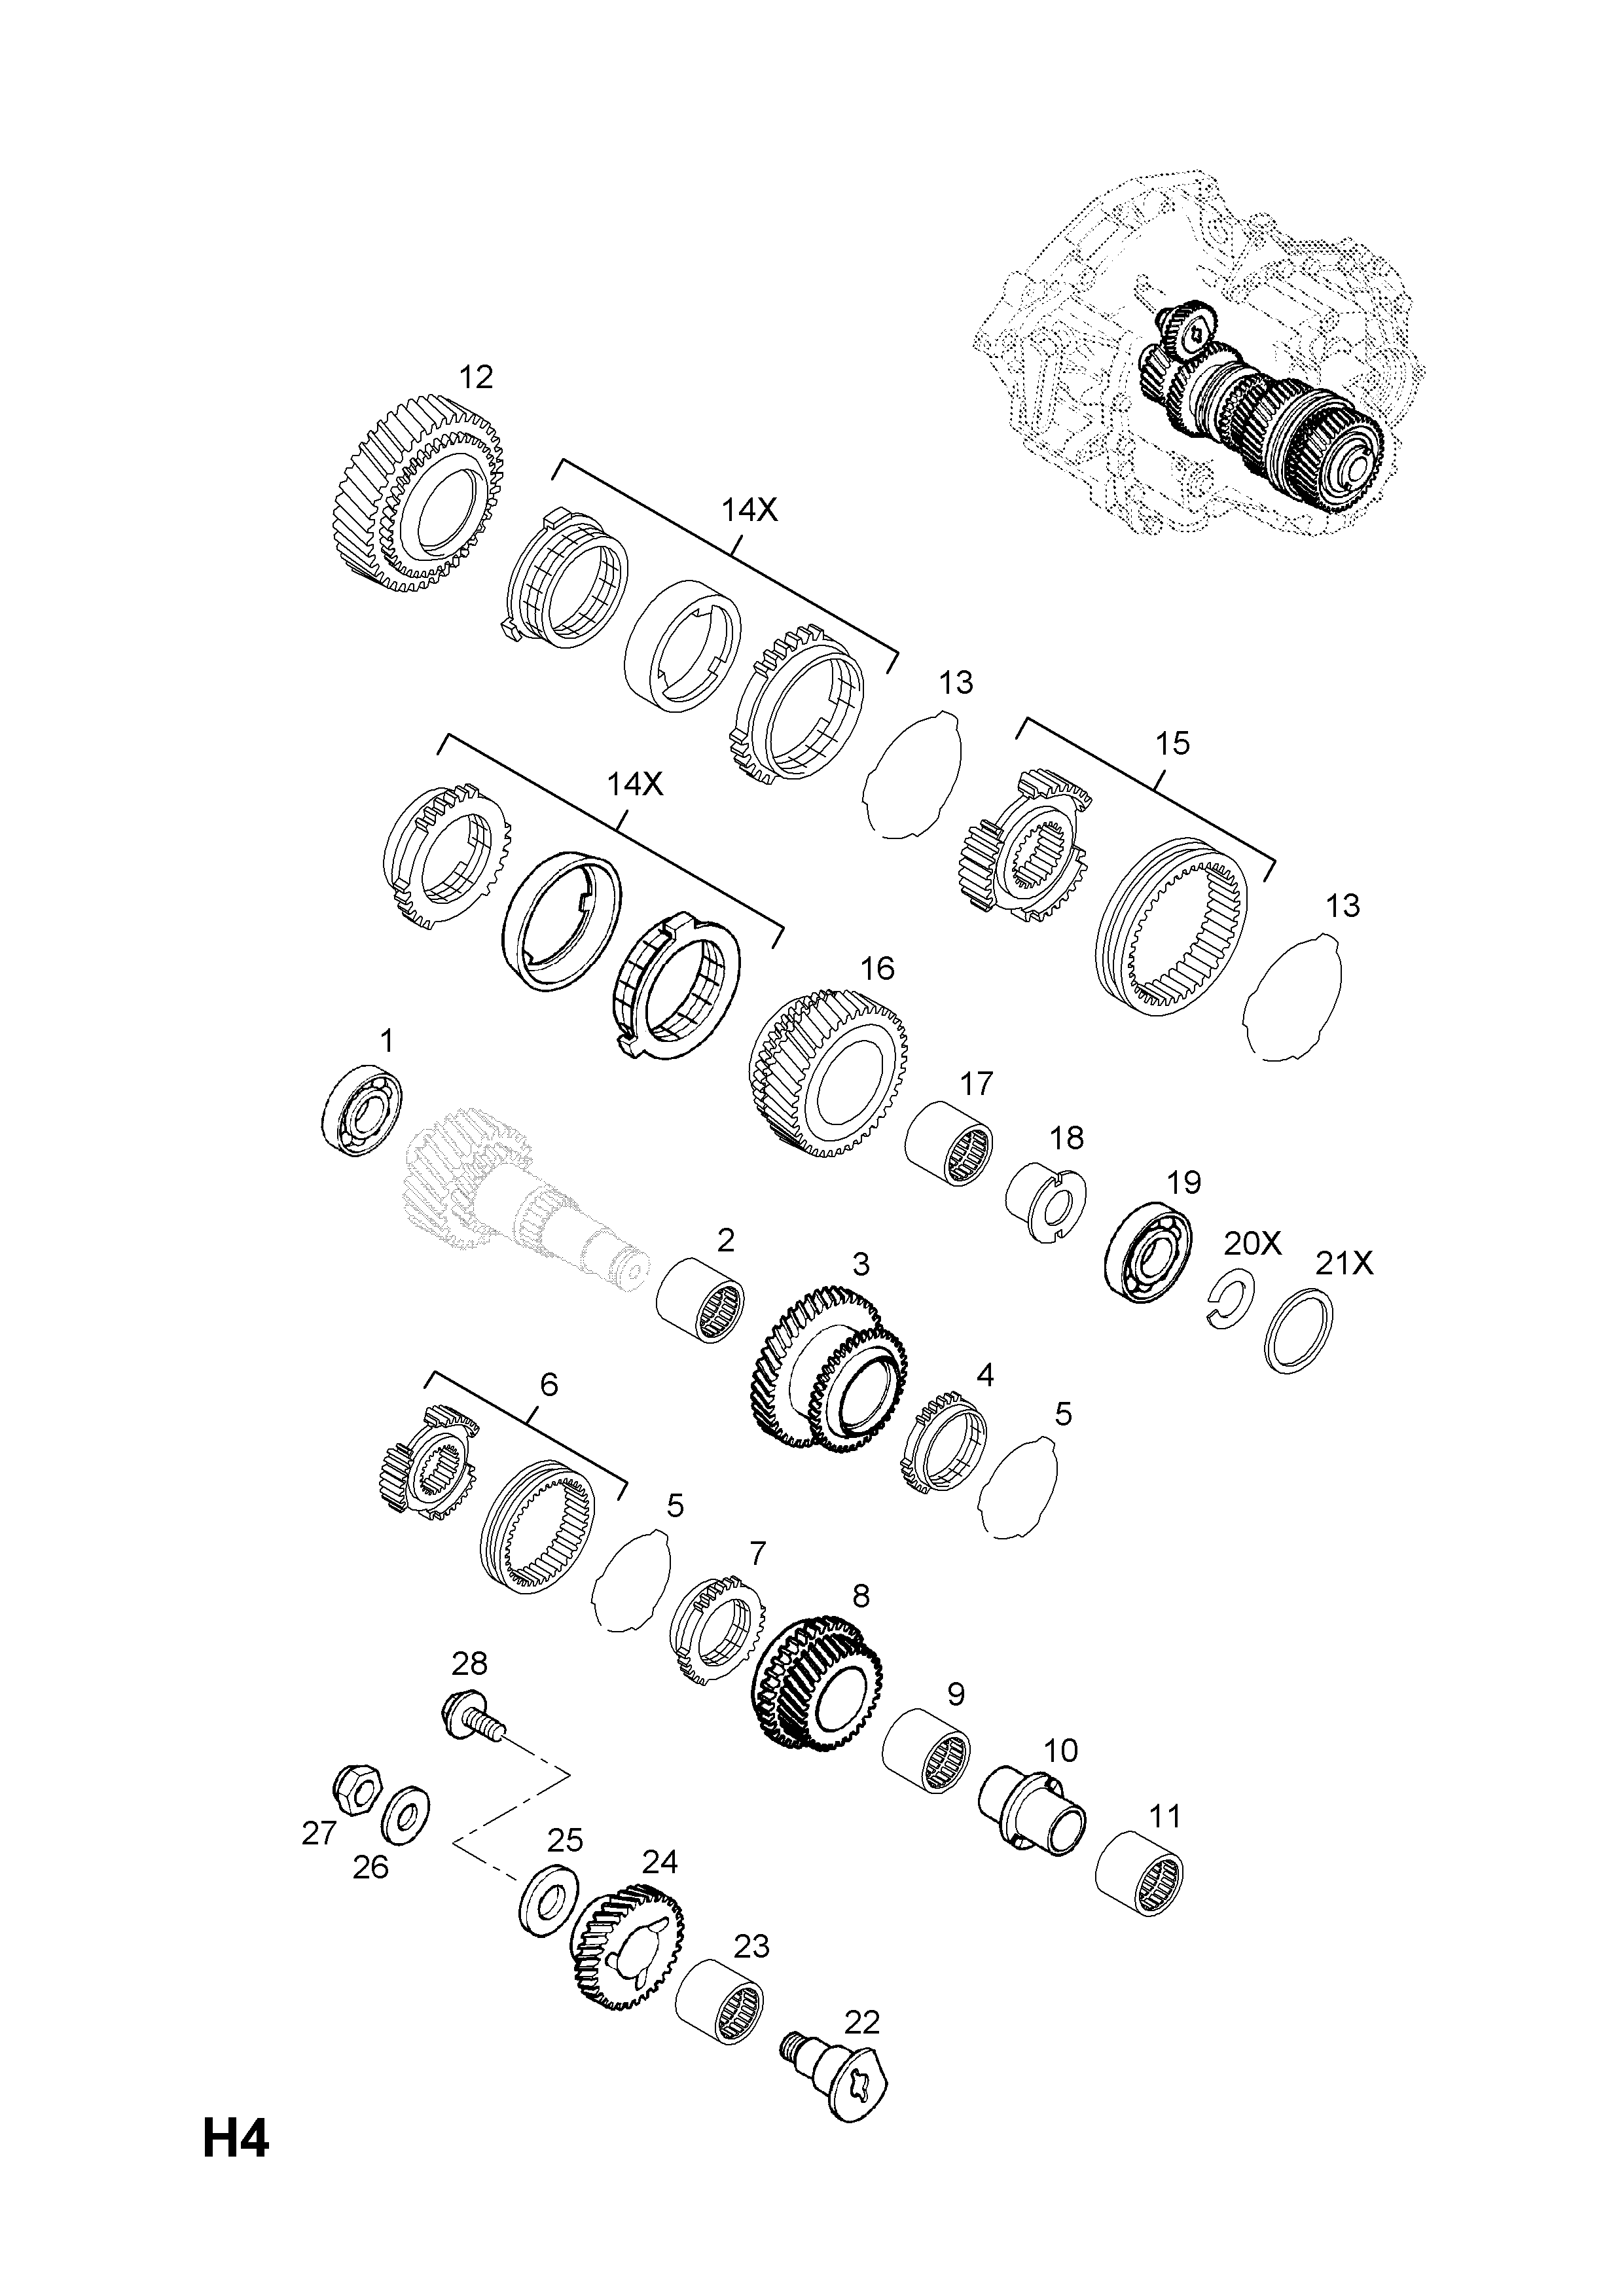 MAINSHAFT GEARS [FIRST,SECOND,FIFTH AND REVERSE GEARS